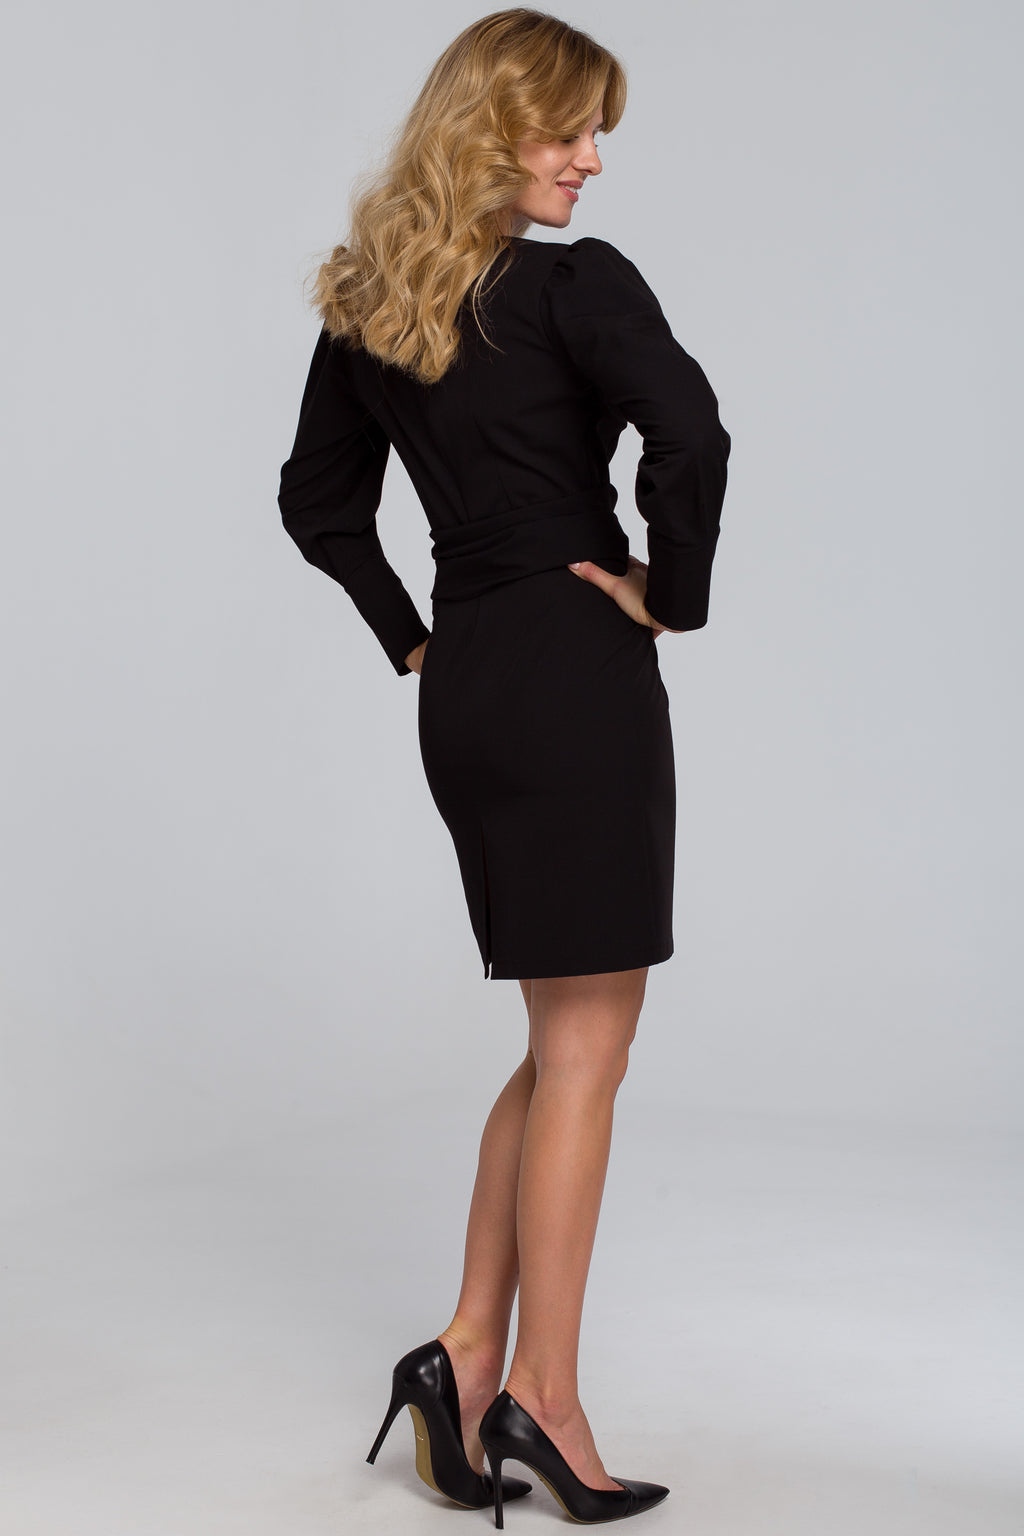 Mini Black Dress With Wide Tie Belt - So Chic Boutique